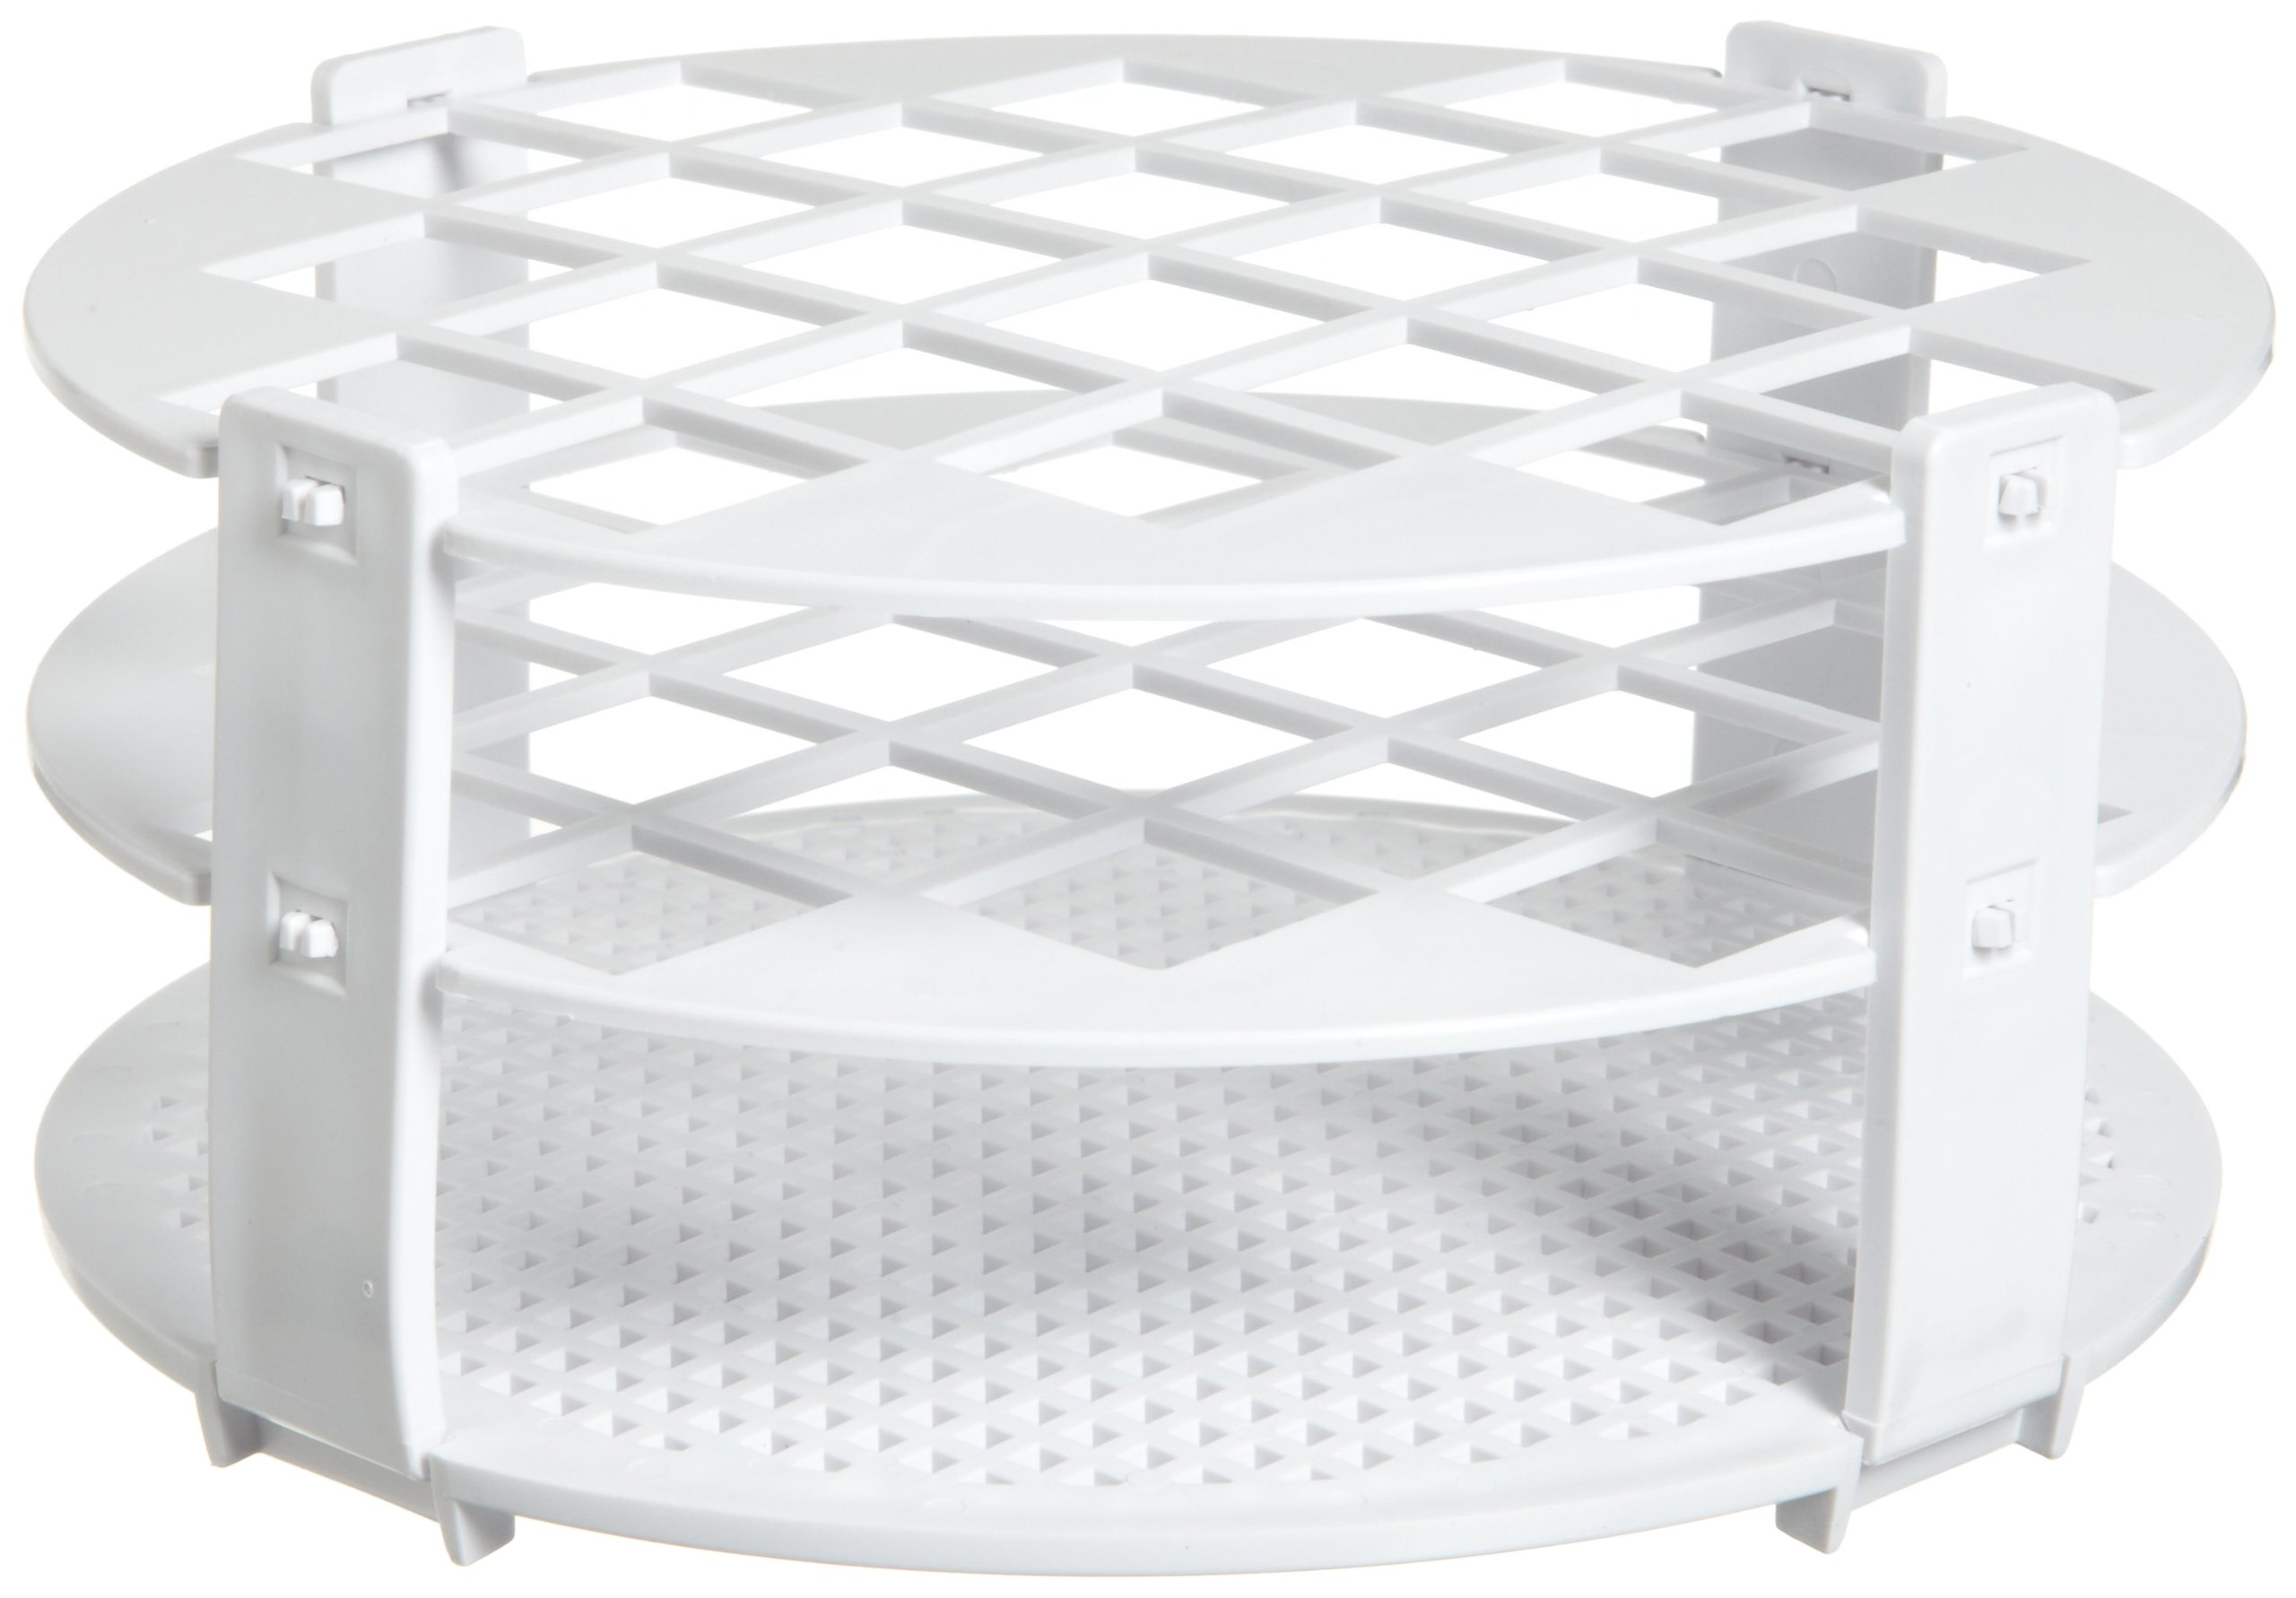 Bel-Art F18741-0020 No-Wire Round Test Tube Rack; 16-20mm, 24 Places, White, Polypropylene